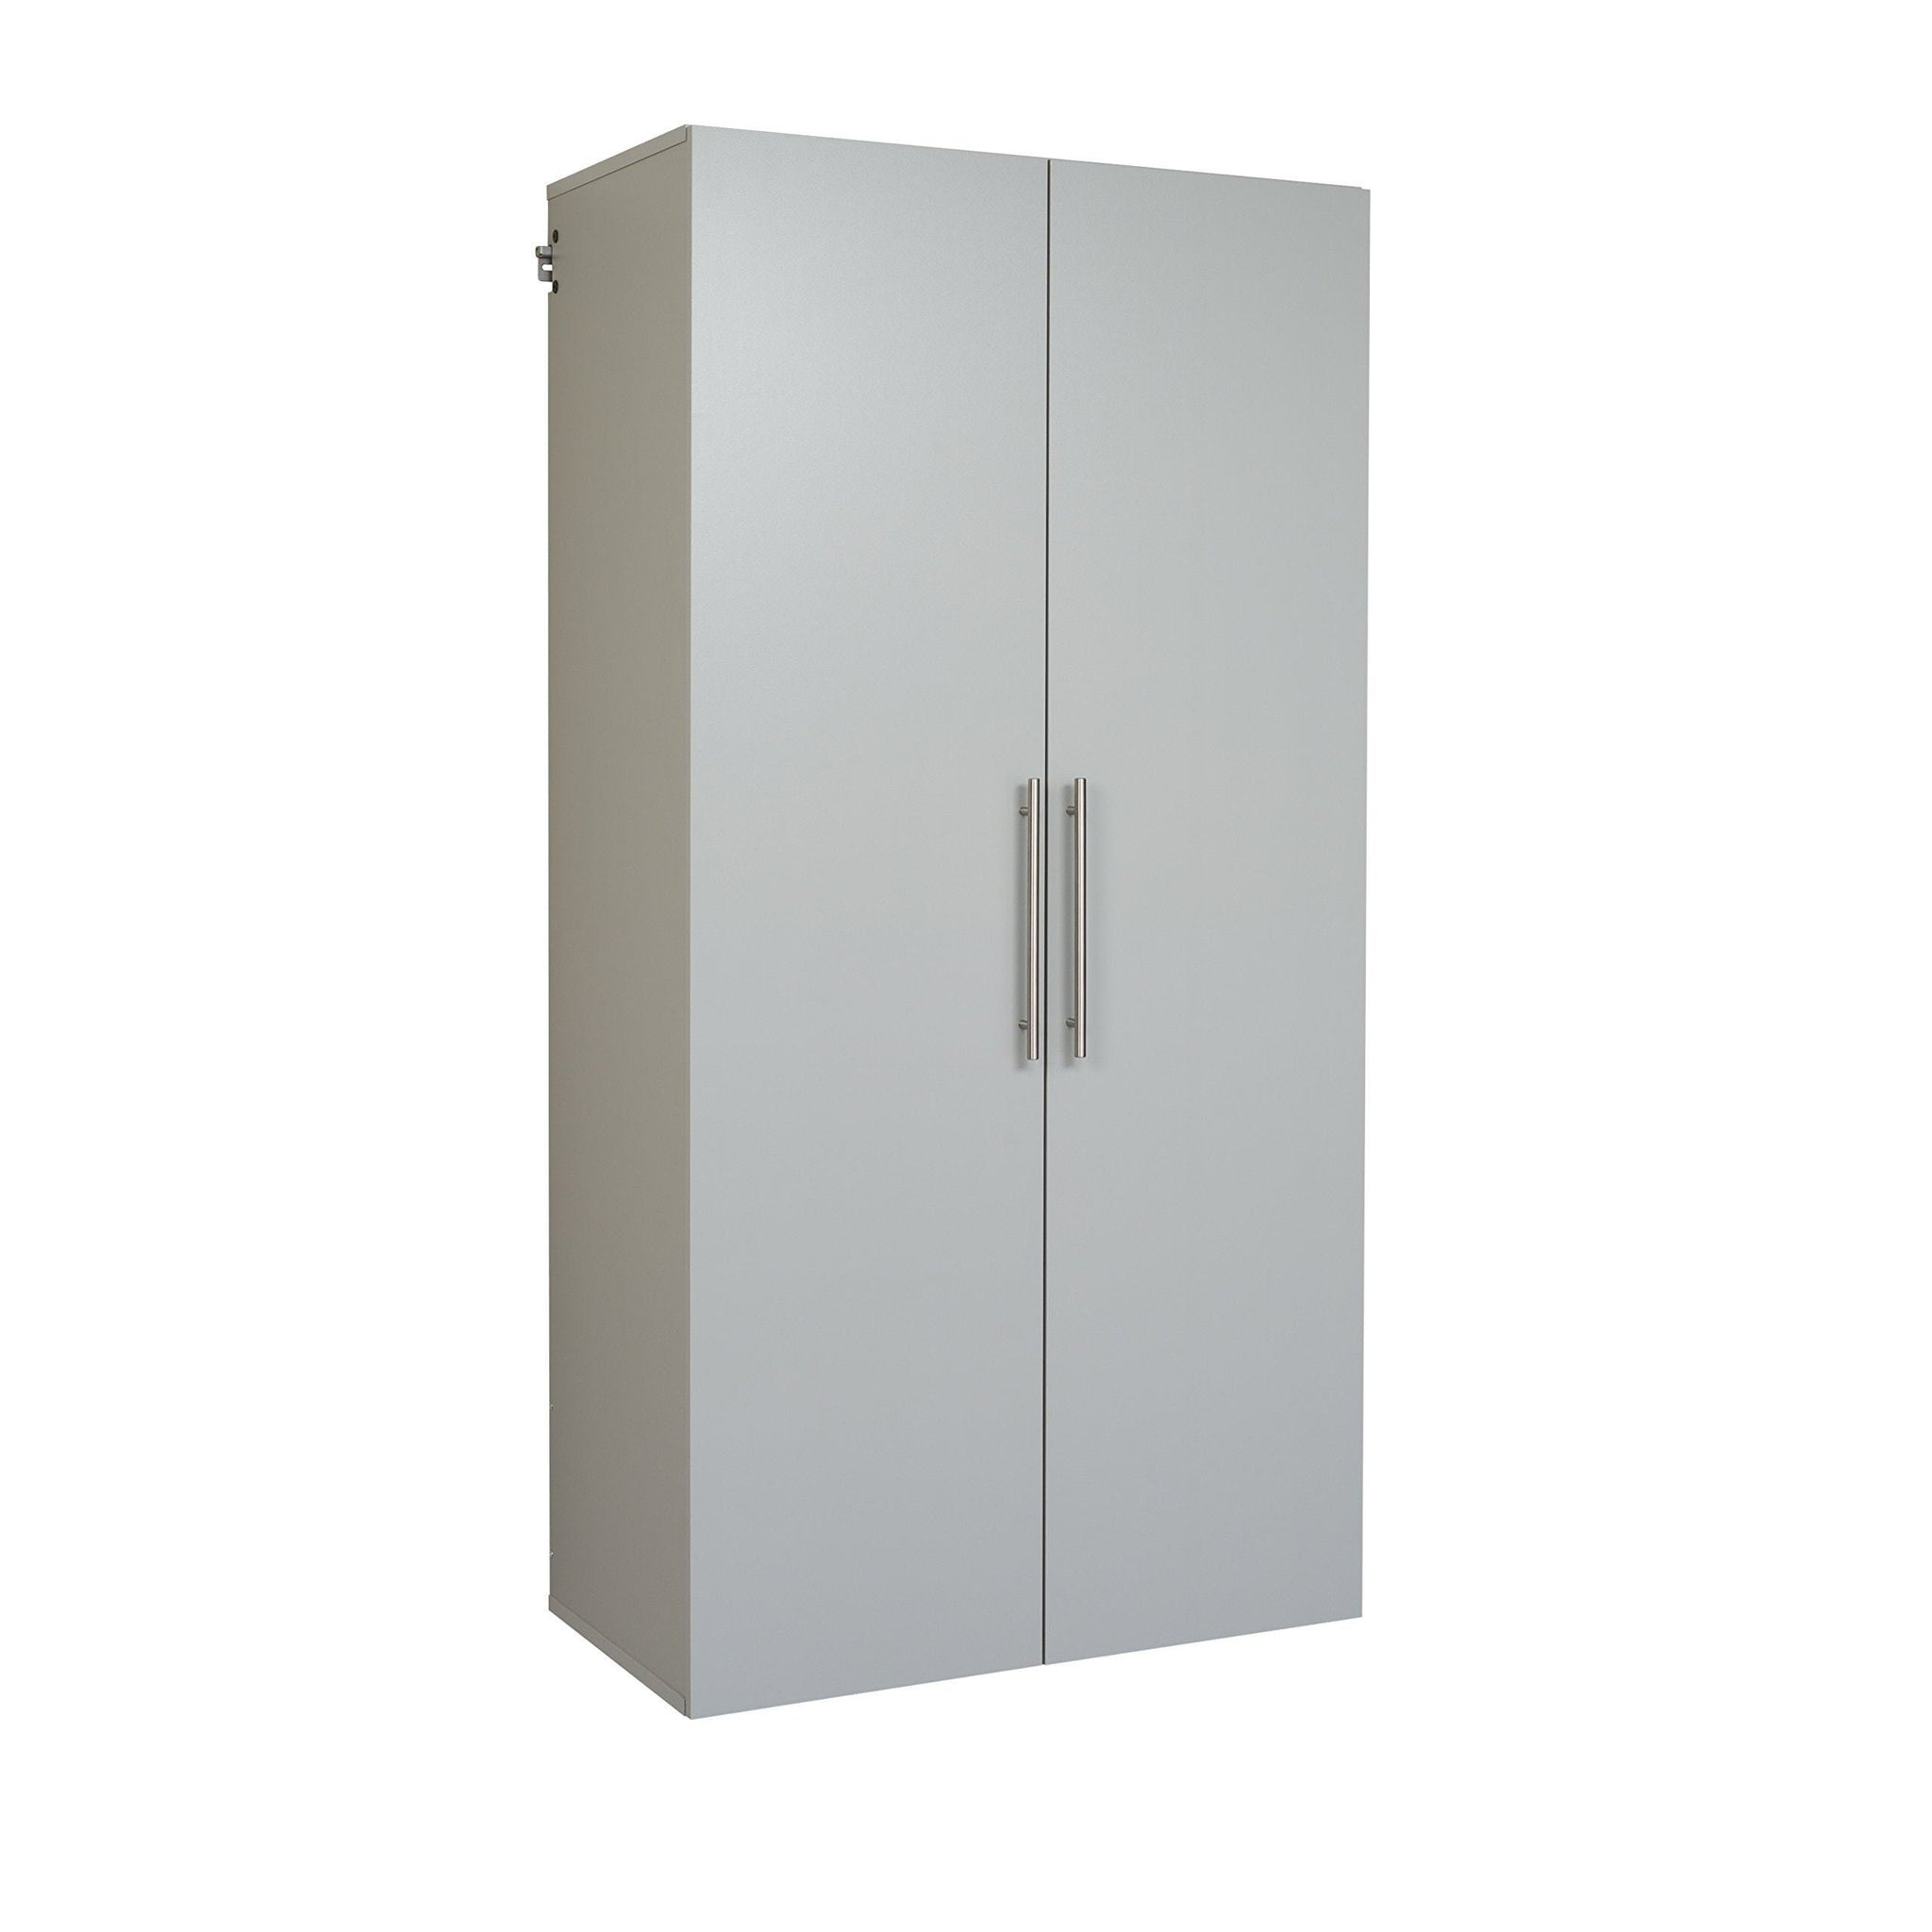 Top prepac gscw 0708 2k hang ups storage cabinet 36 large light gray